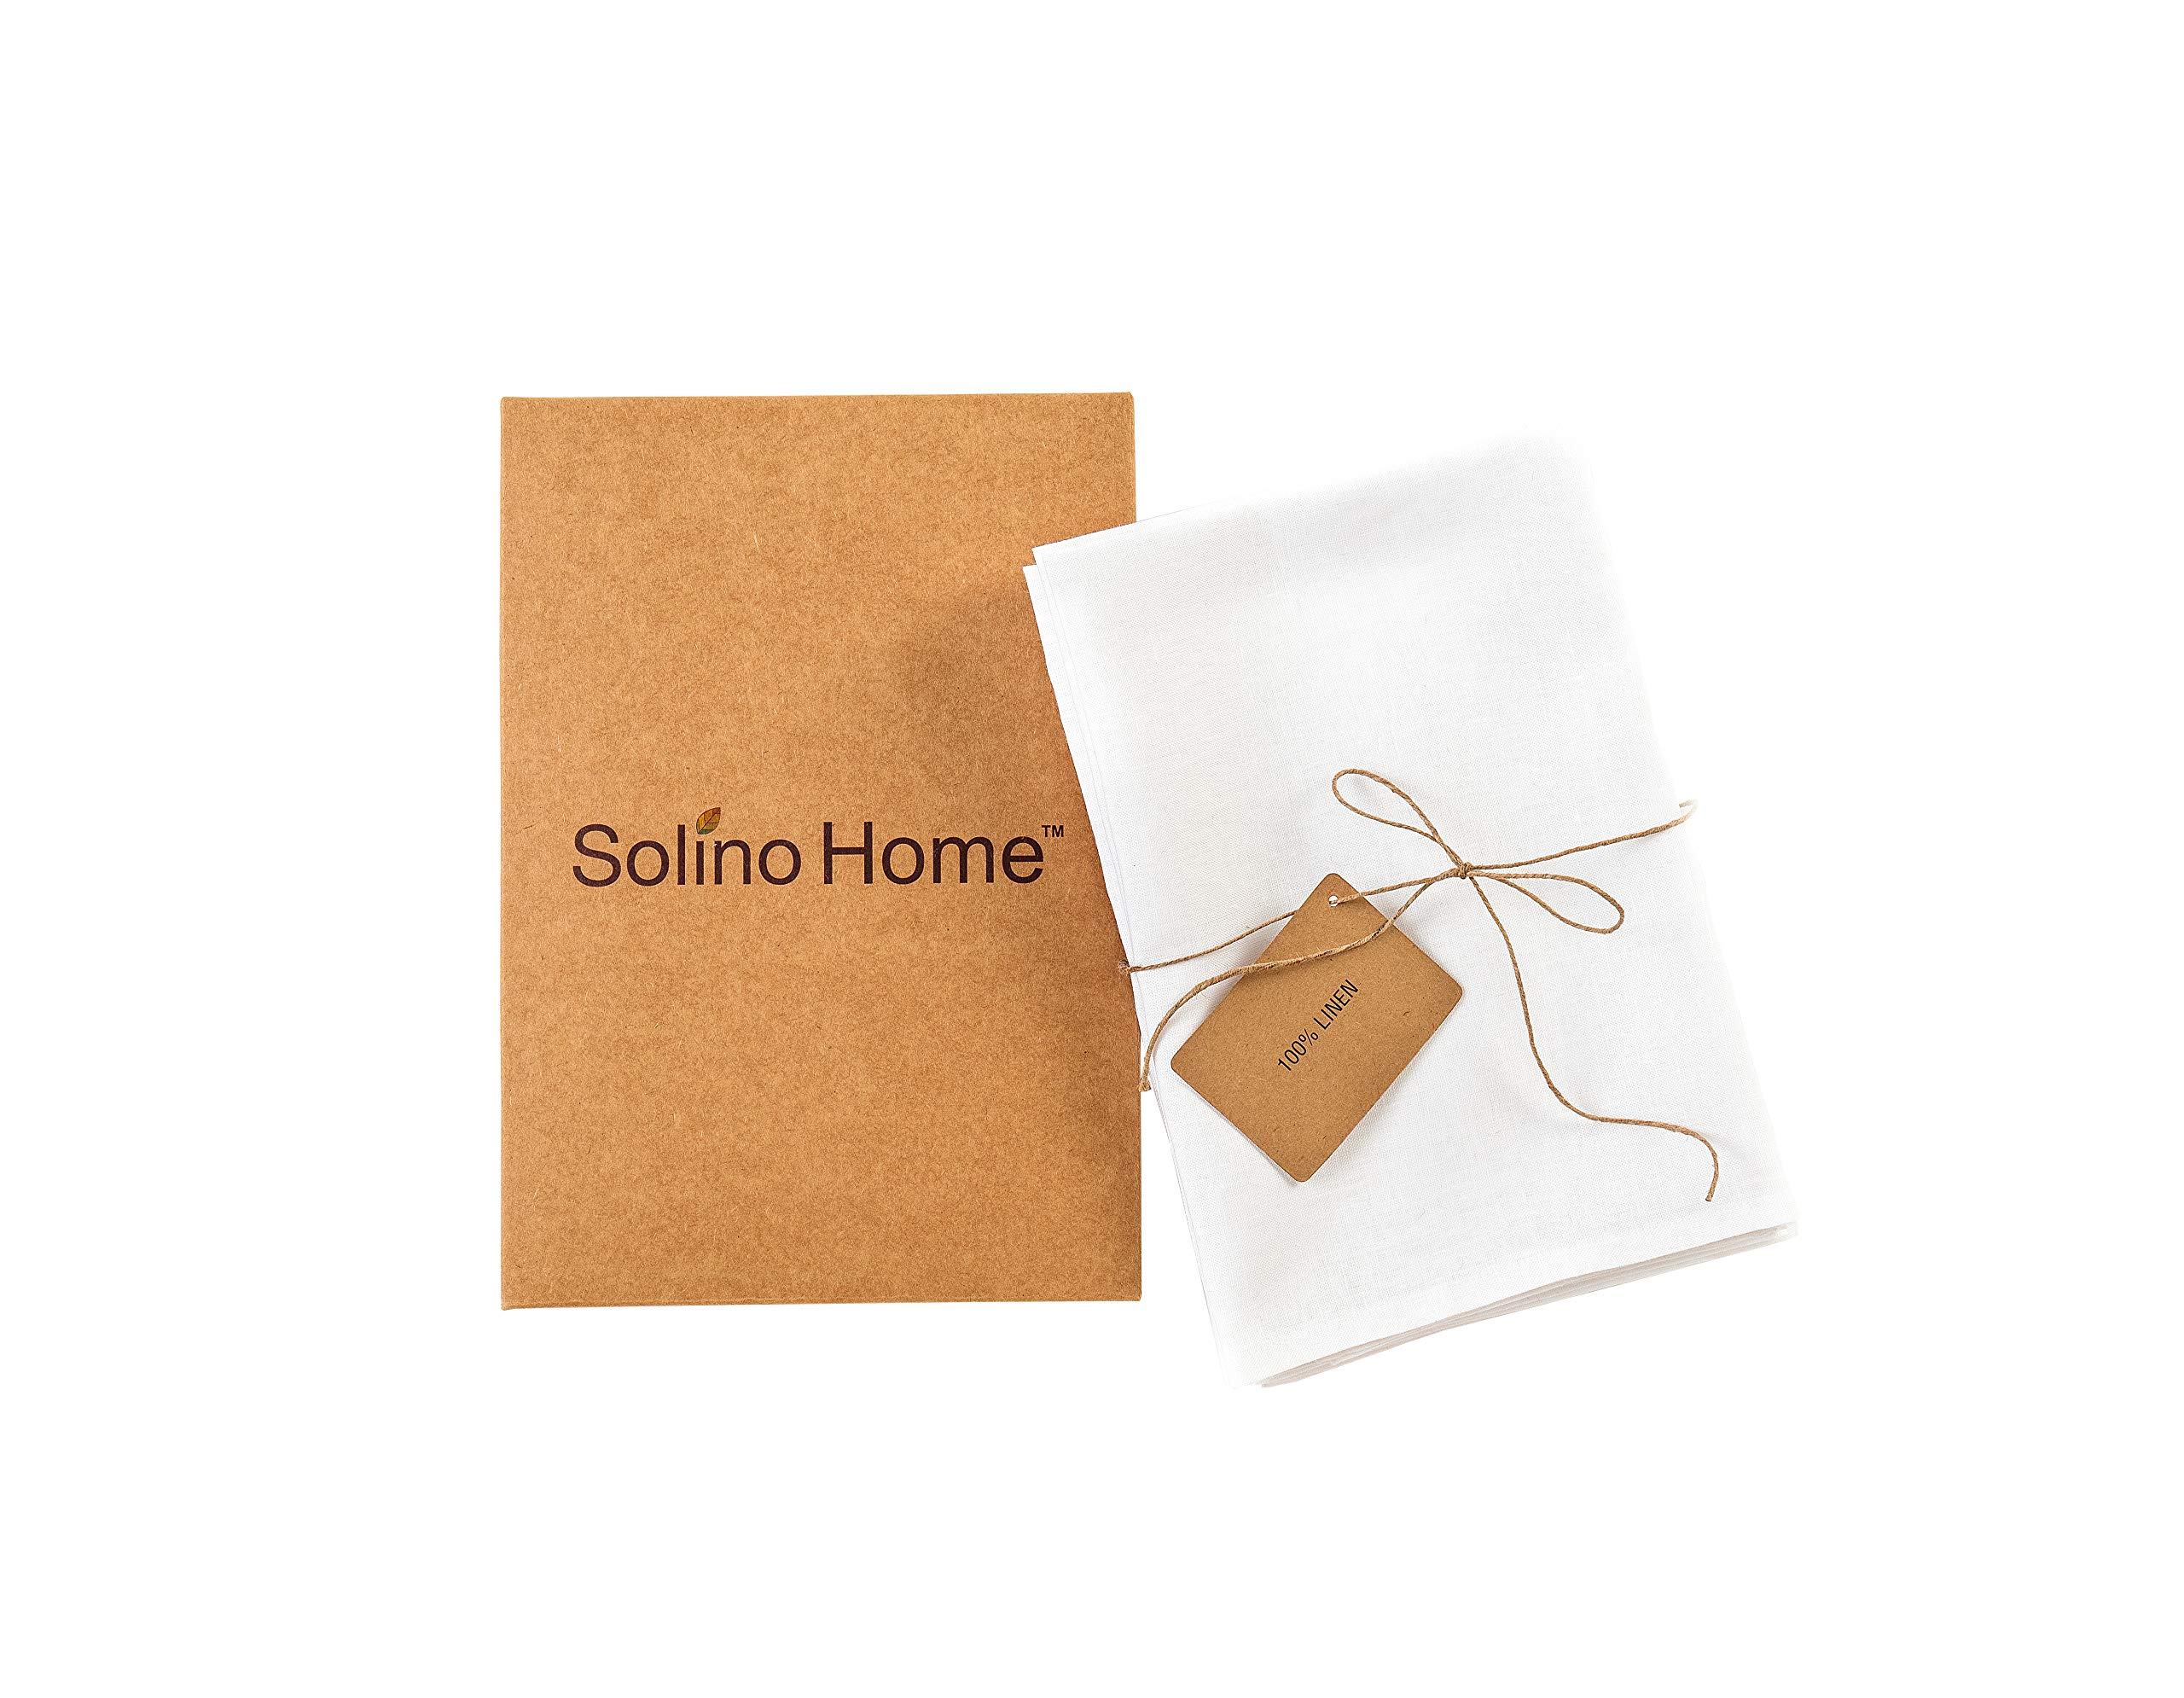 Solino Home Linen Dinner Napkins - 20 x 20 Inch White, 4 Pack Linen Napkins, Athena - 100% European Flax, Soft & Handcrafted with Mitered Corners by Solino Home (Image #4)